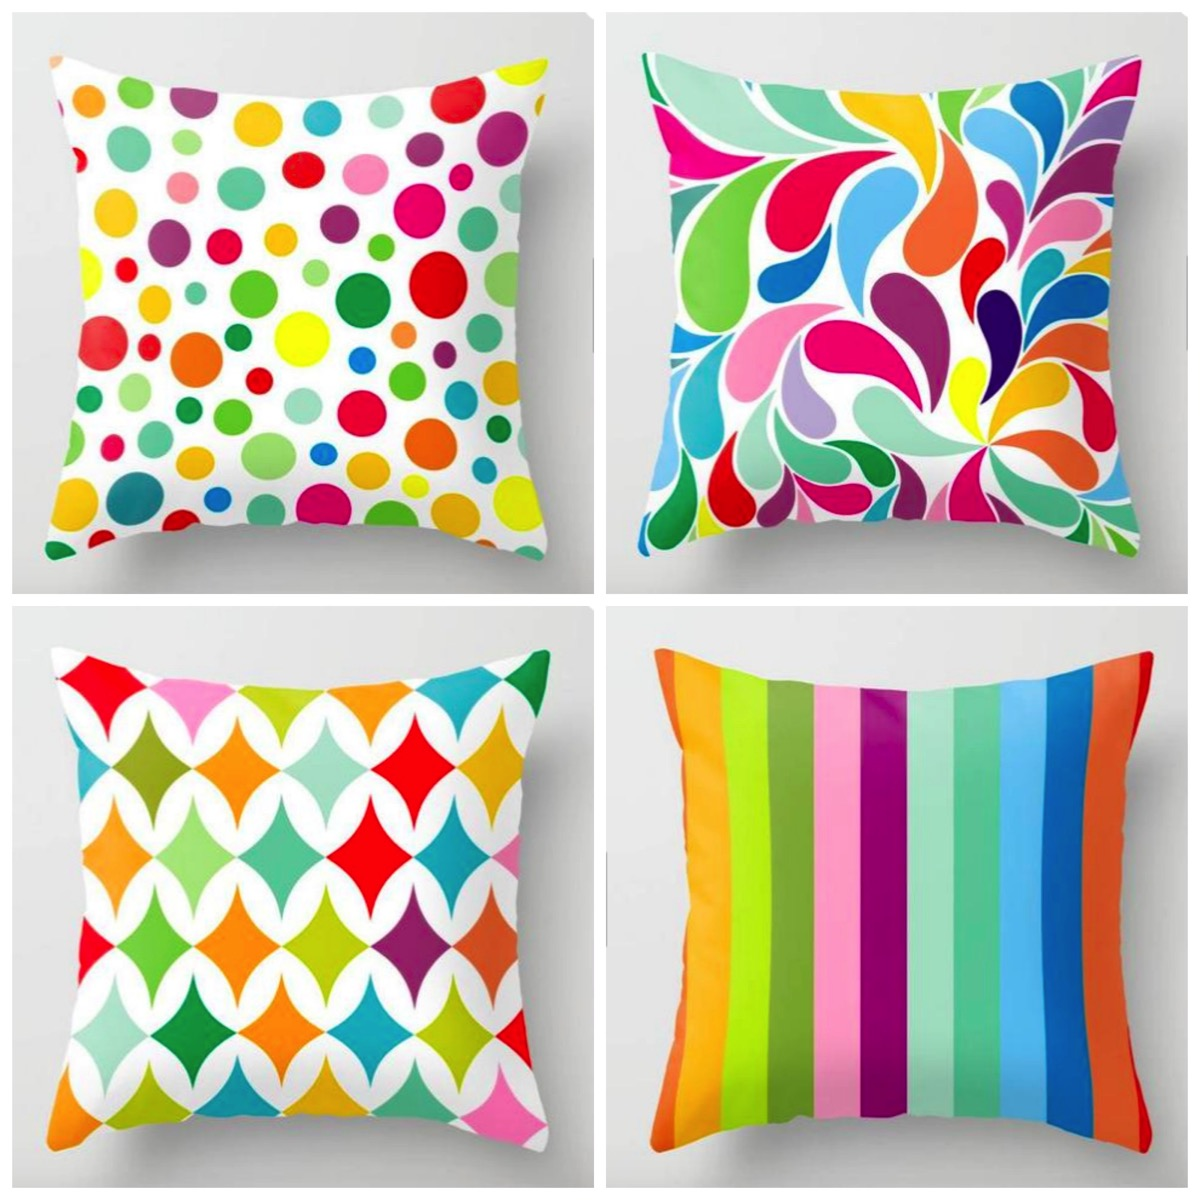 Colorful decorative pillows art is everything etsy dig and hang most colorful bold and Eclectic decor pillows